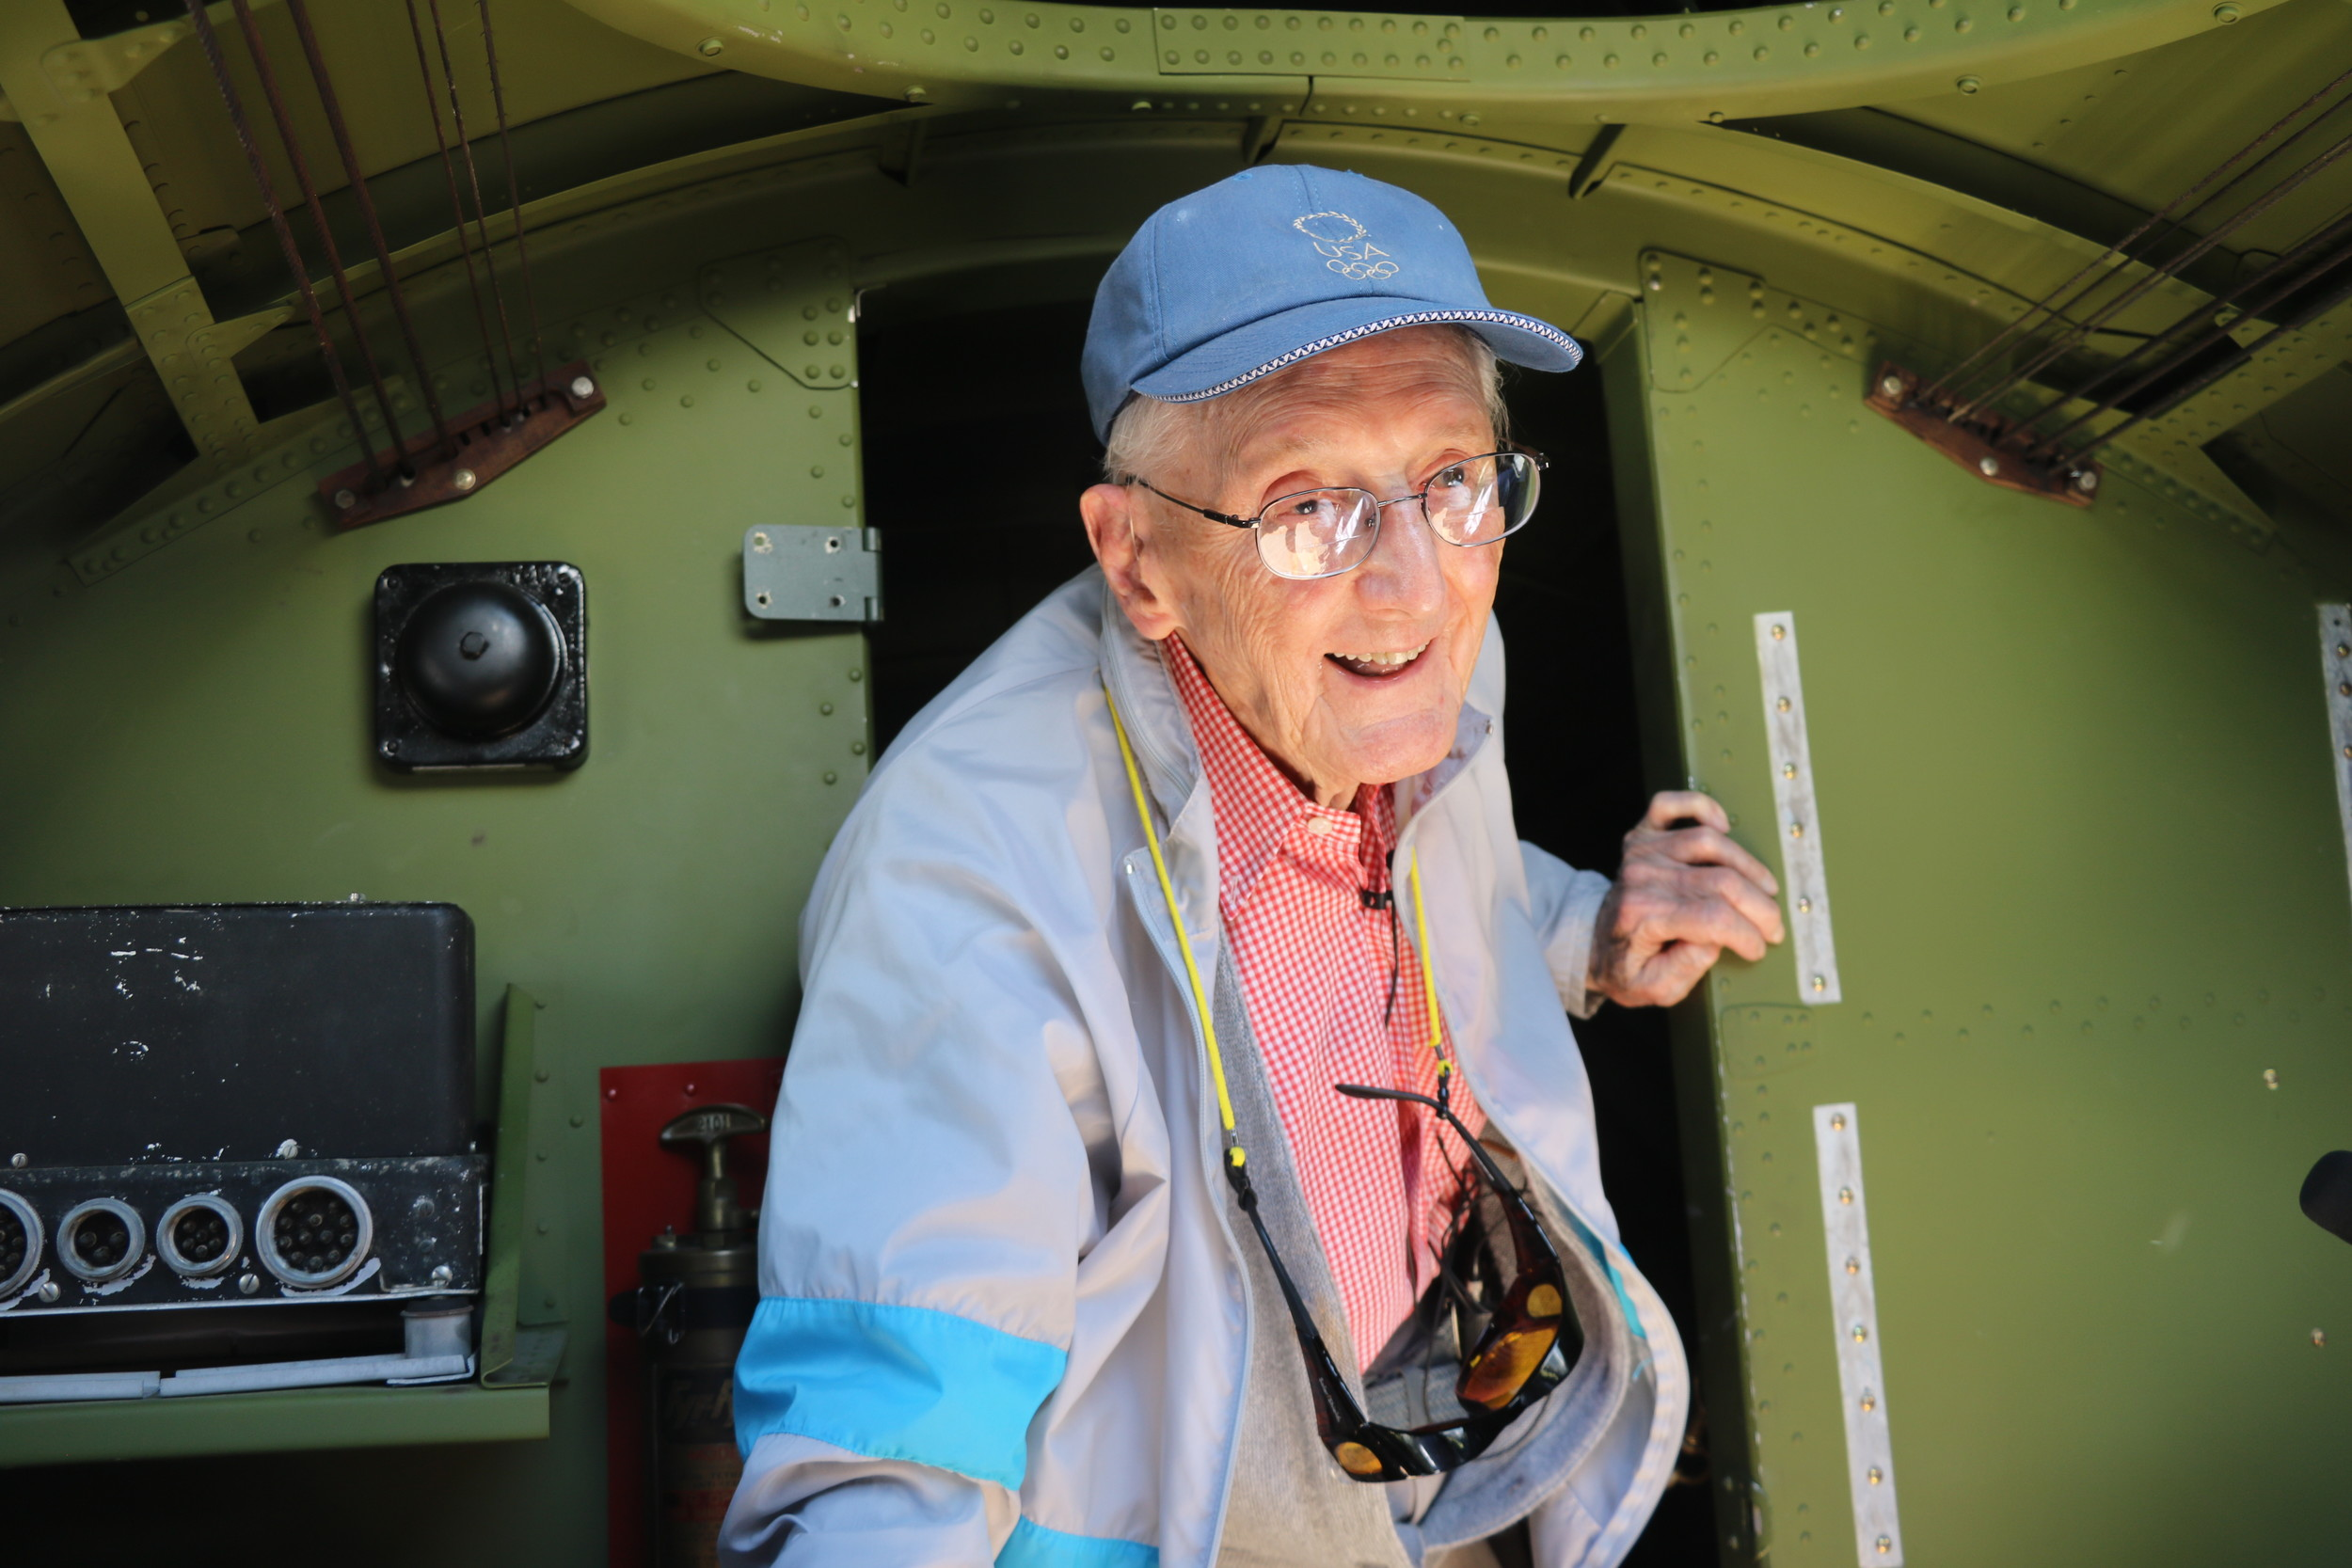 World War II veteran Robert McAdam, 96, of Highlands Ranch, climbs through the Madras Maiden B-17 bomber during its visit to the Rocky Mountain Metro Airport.